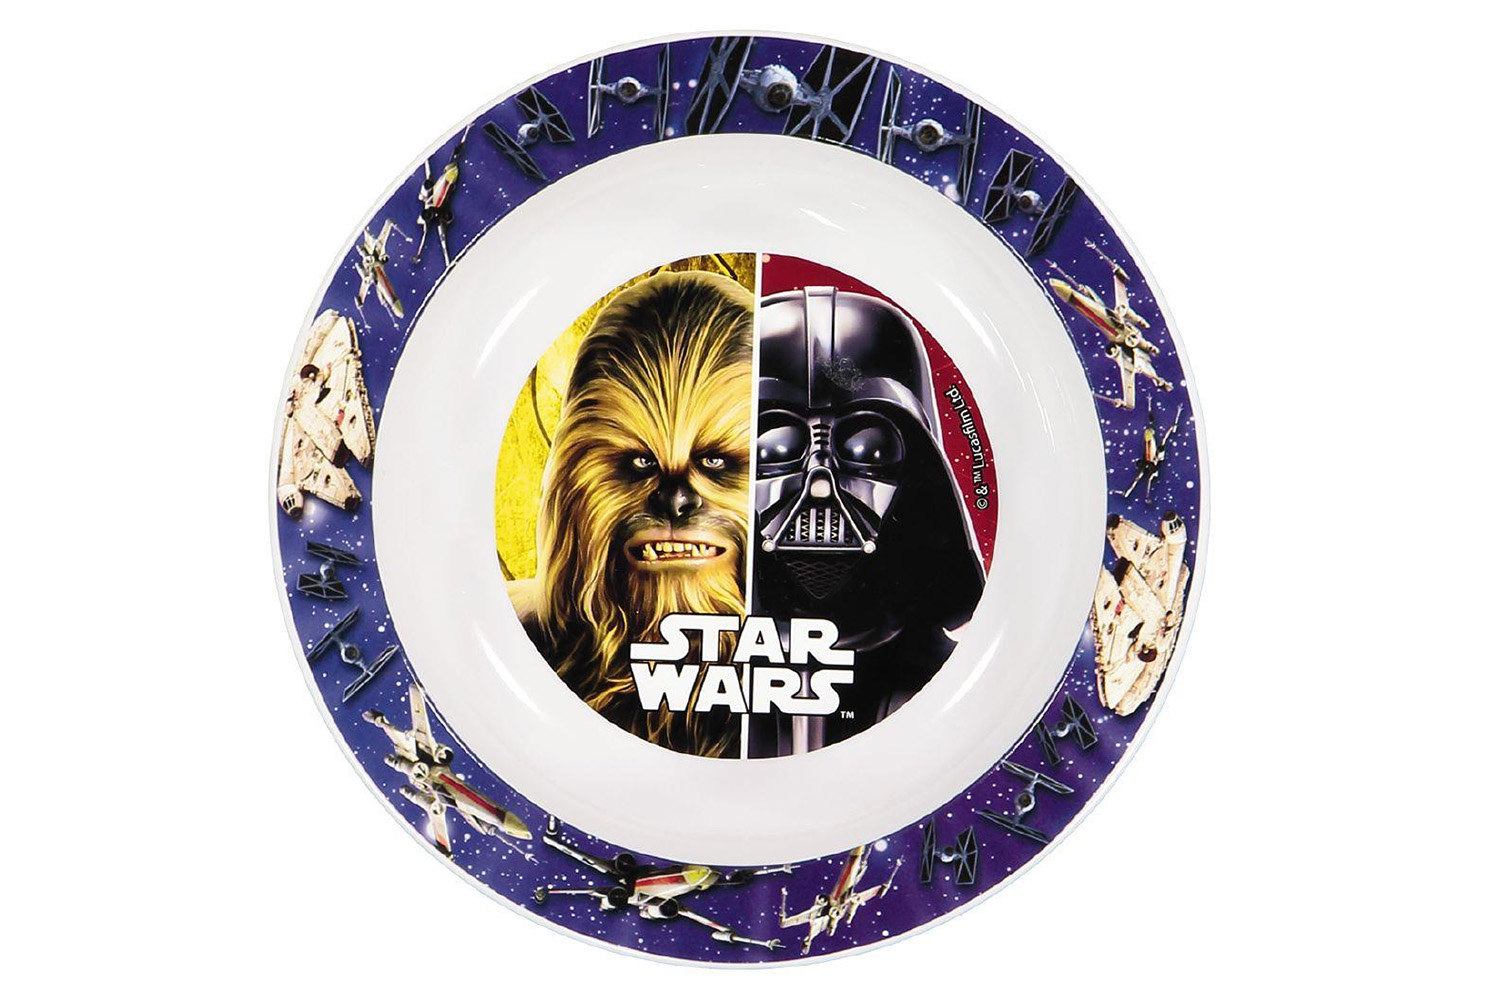 Some Star Wars goodies for even the youngest kids u2013 this plastic cutlery set and plate are only $2 per set at The Warehouse.  sc 1 st  SWNZ & Star Wars Cutlery and Plates for Kids - SWNZ Star Wars New Zealand